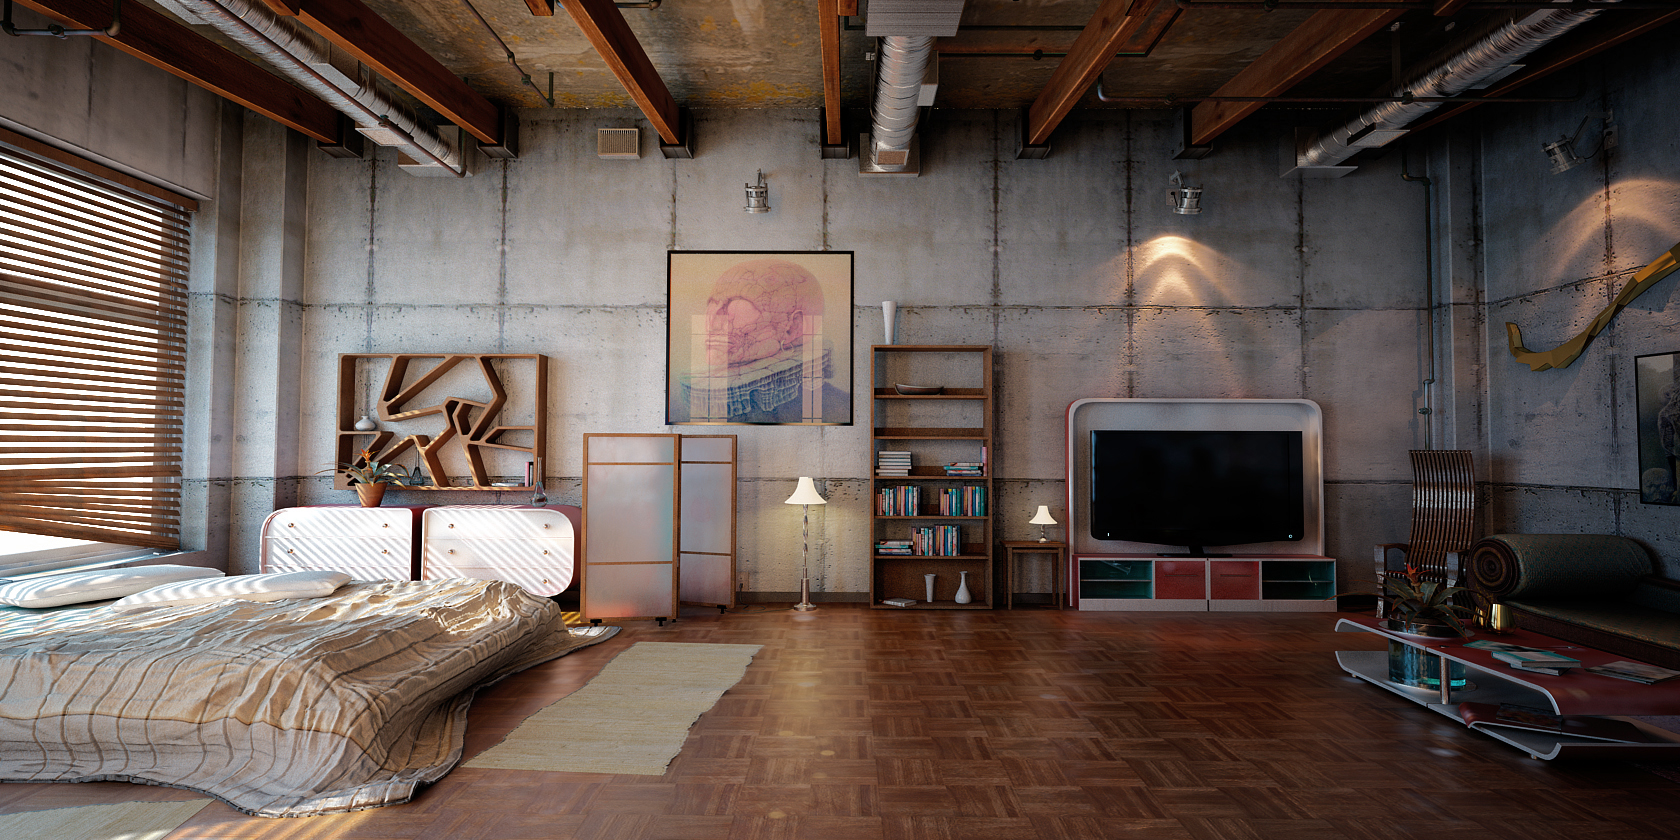 http://couo.ru/wp-content/uploads/2016/01/fantastic-industrial-loft-by-denisvema-dhvprf.jpg